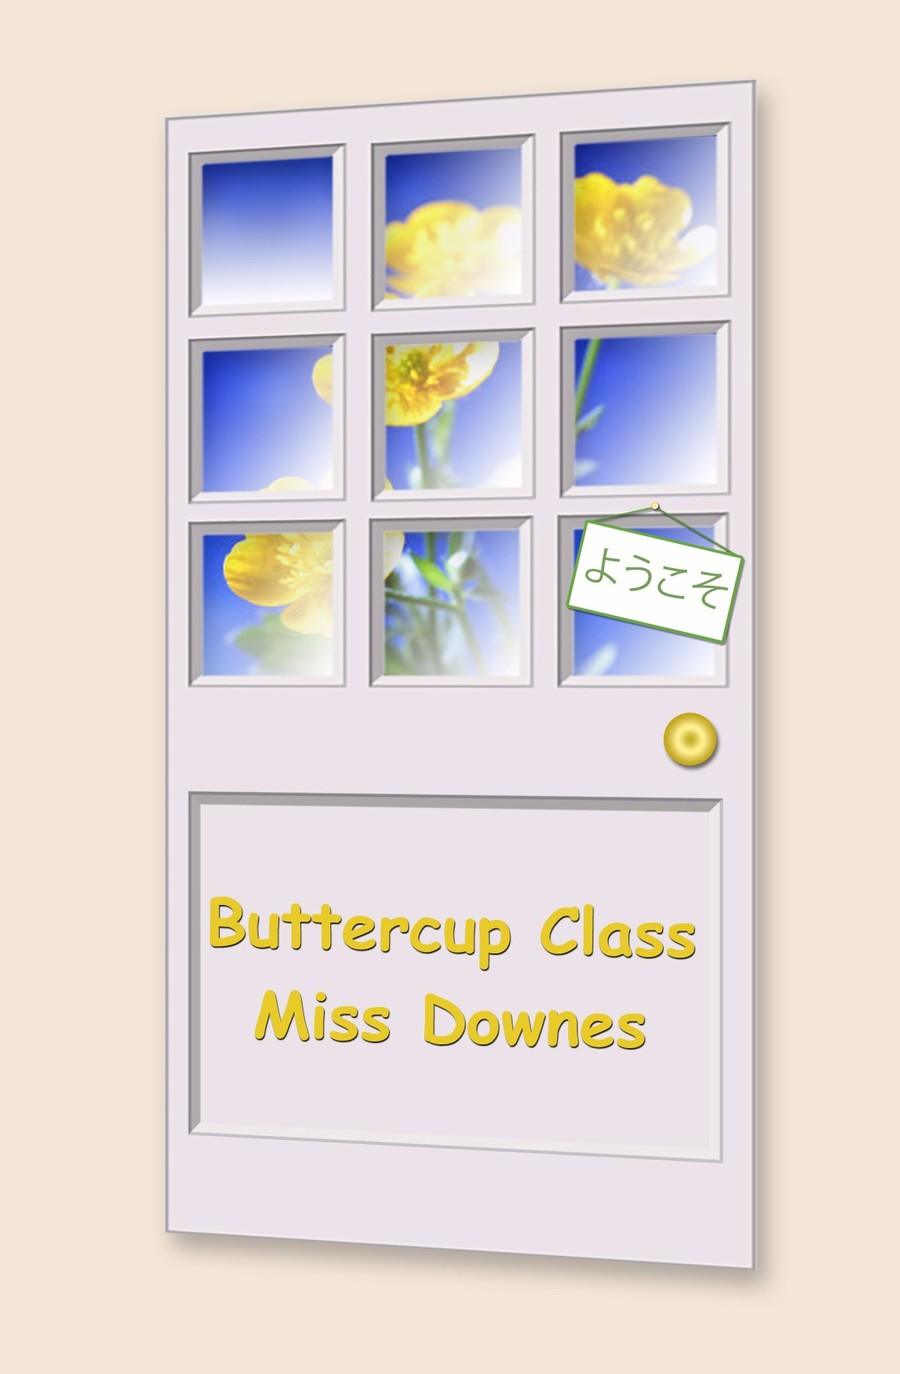 Go to Buttercup Class